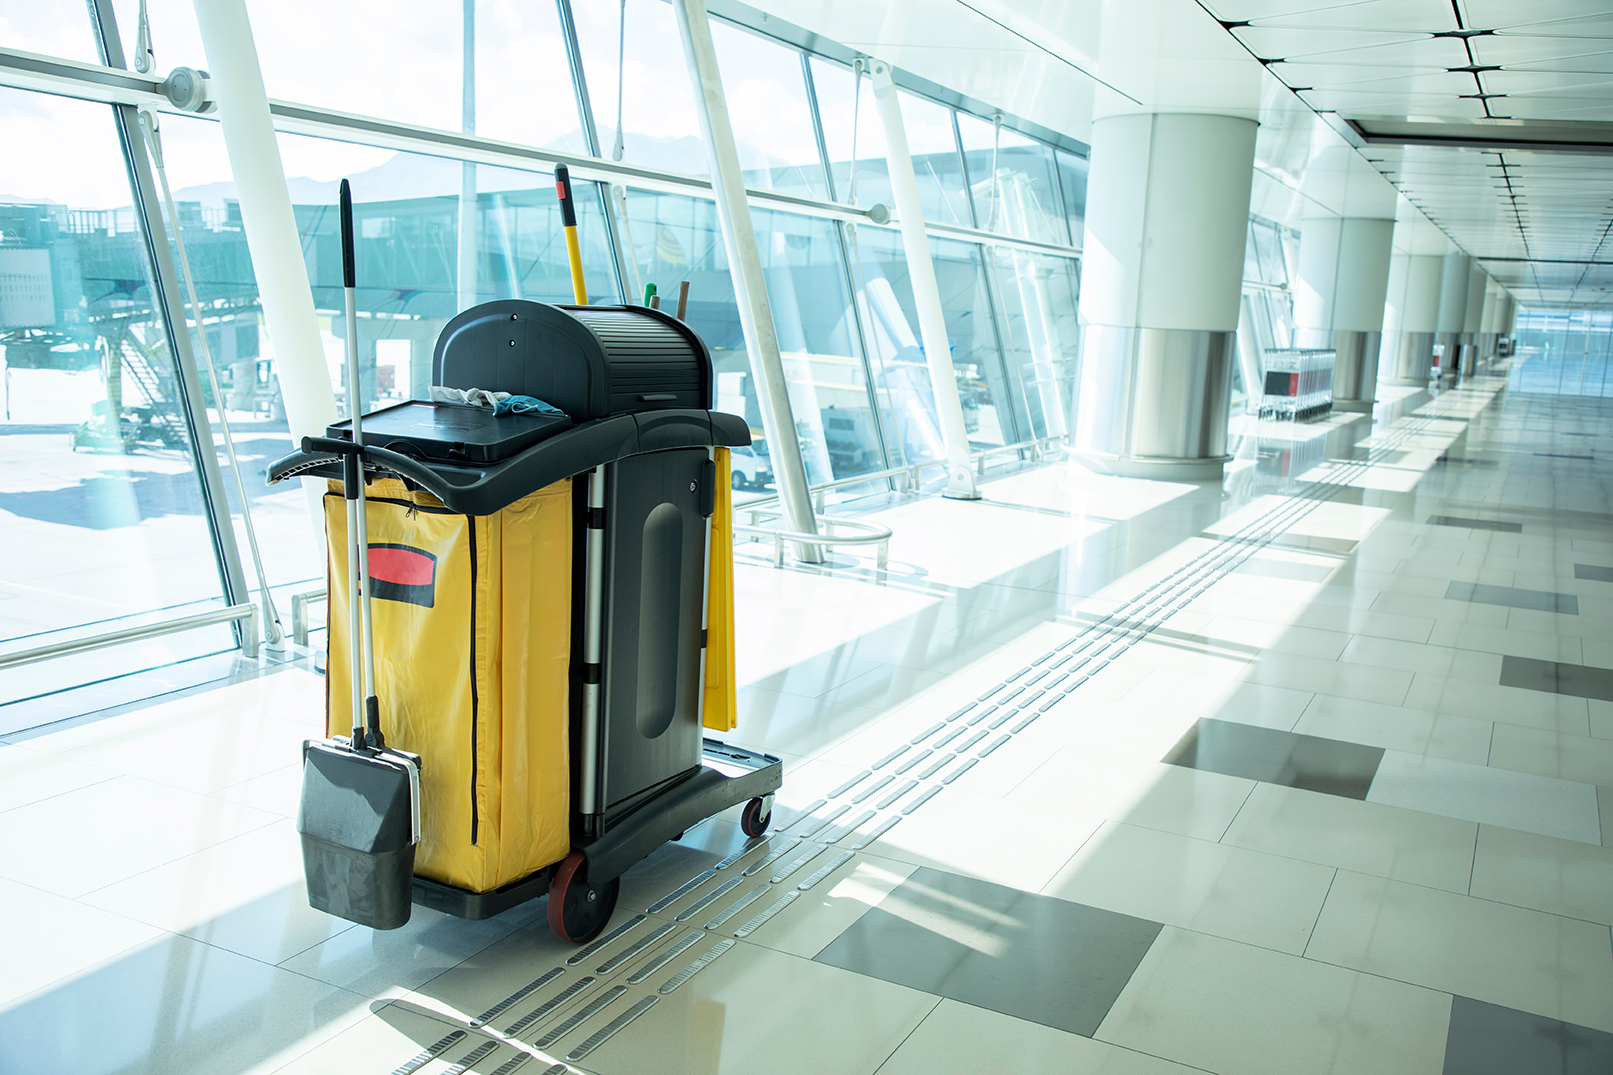 Janitorial Cart in Building